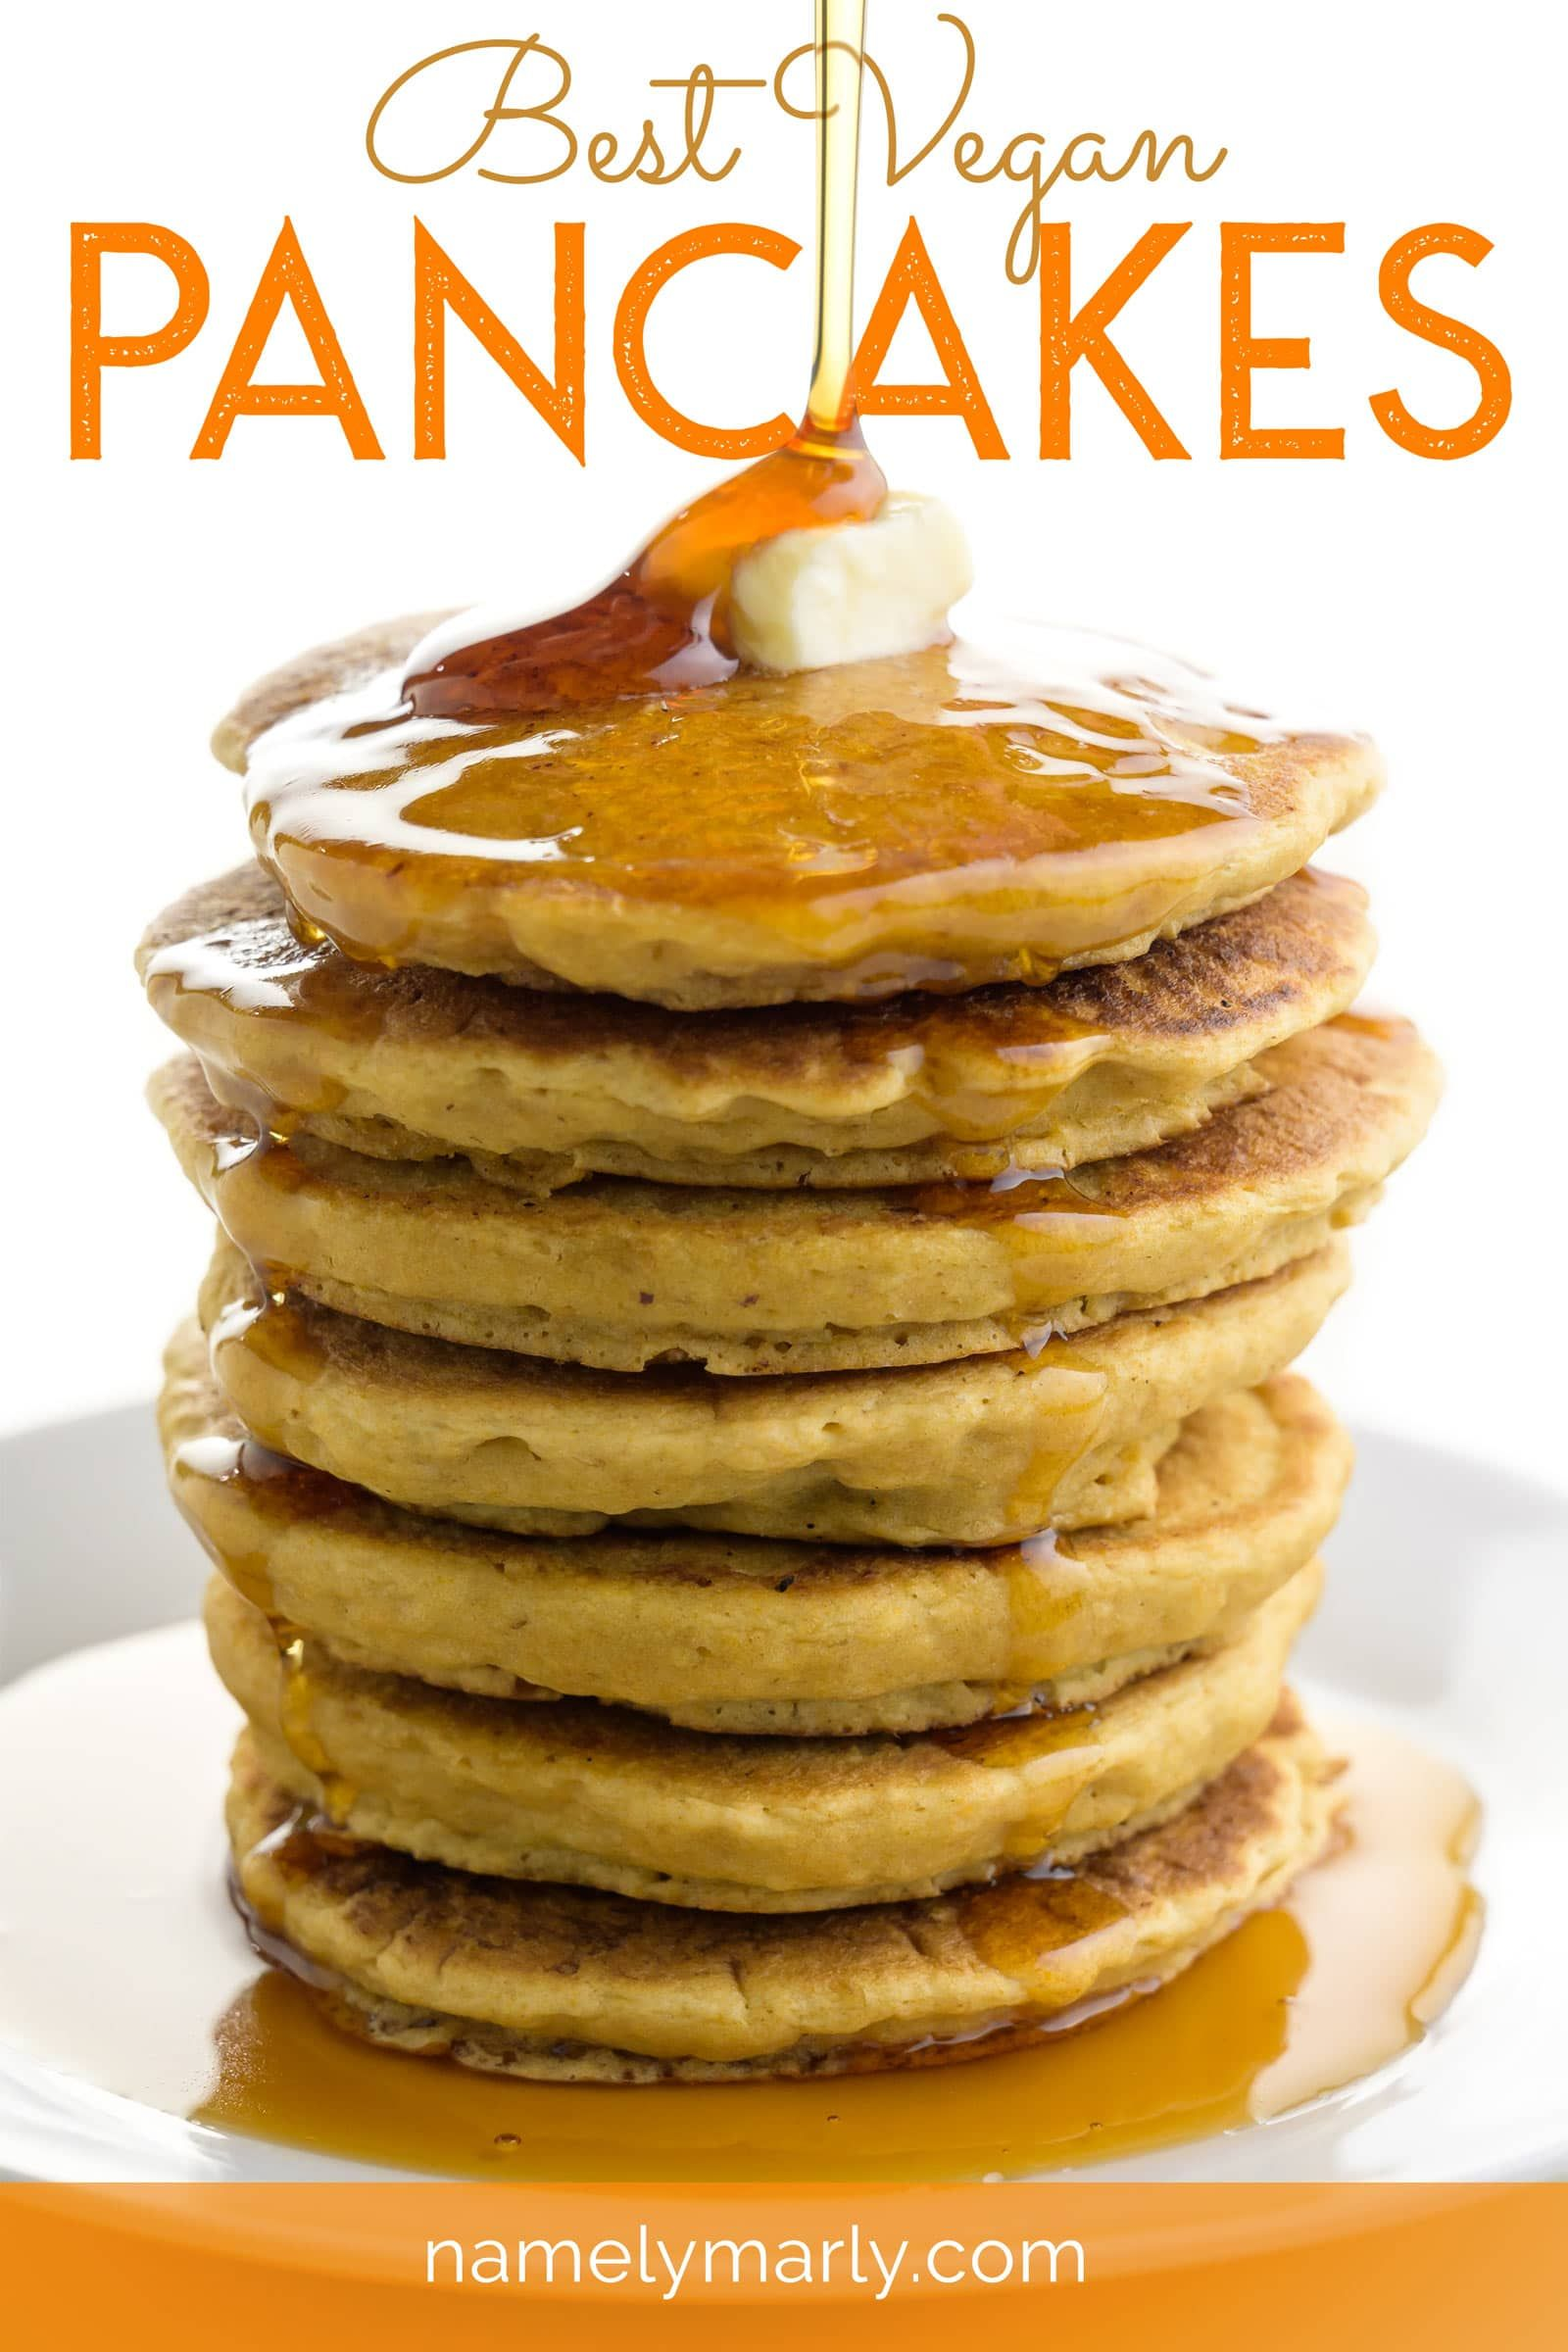 This Best Vegan Pancakes Recipe Creates The Best Light And Fluffy Pancakes You Ll Love This In 2020 Best Vegan Pancakes Vegan Pancake Recipes Low Carb Recipes Dessert